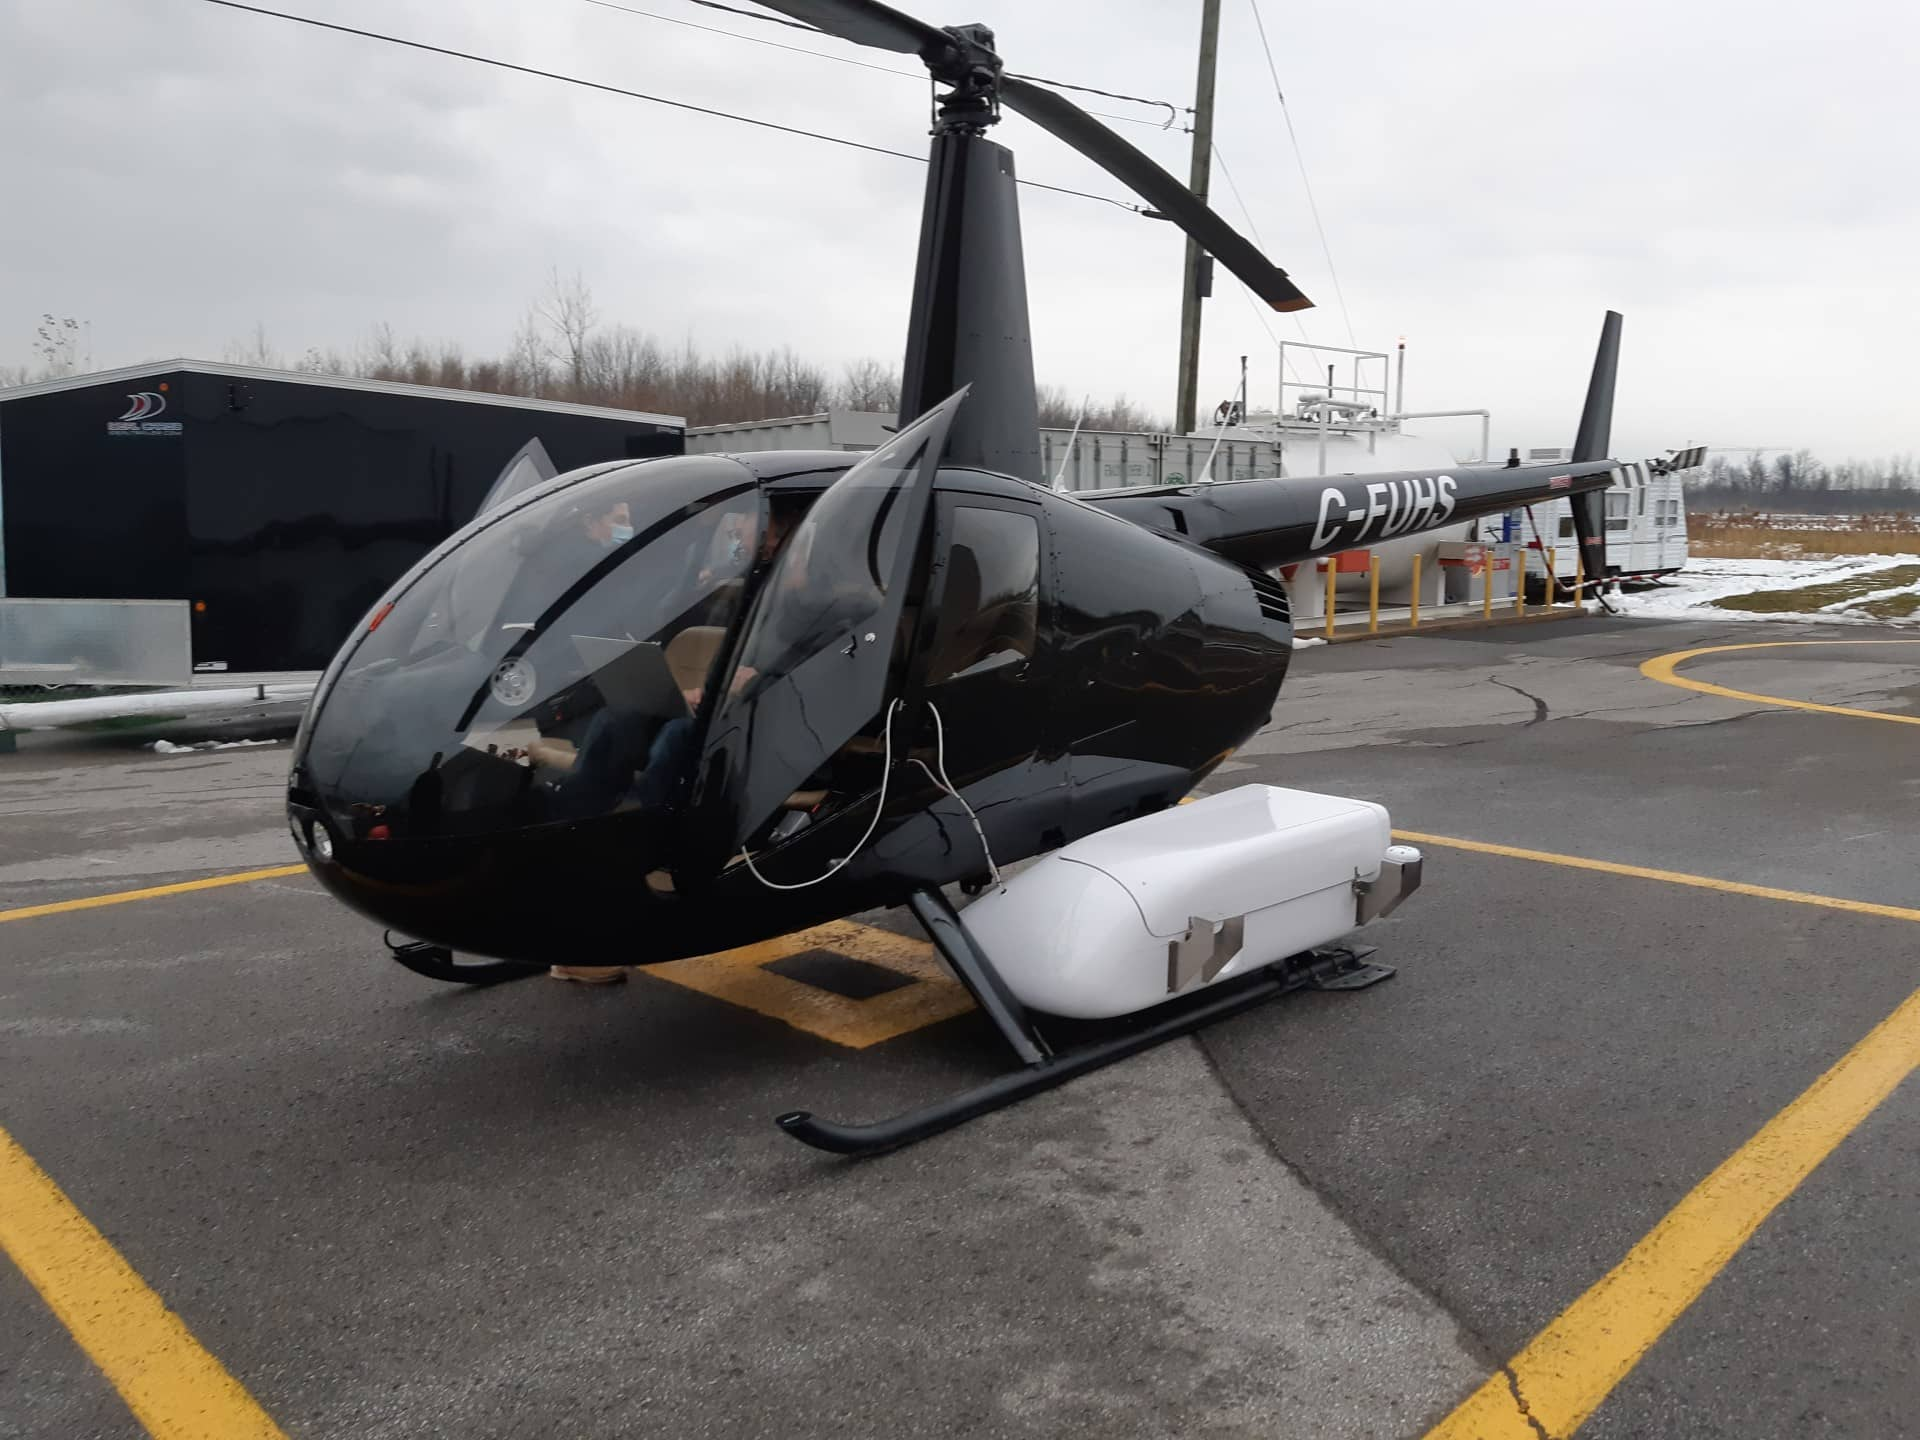 A black helicopter pod about to go flying with 2 persons